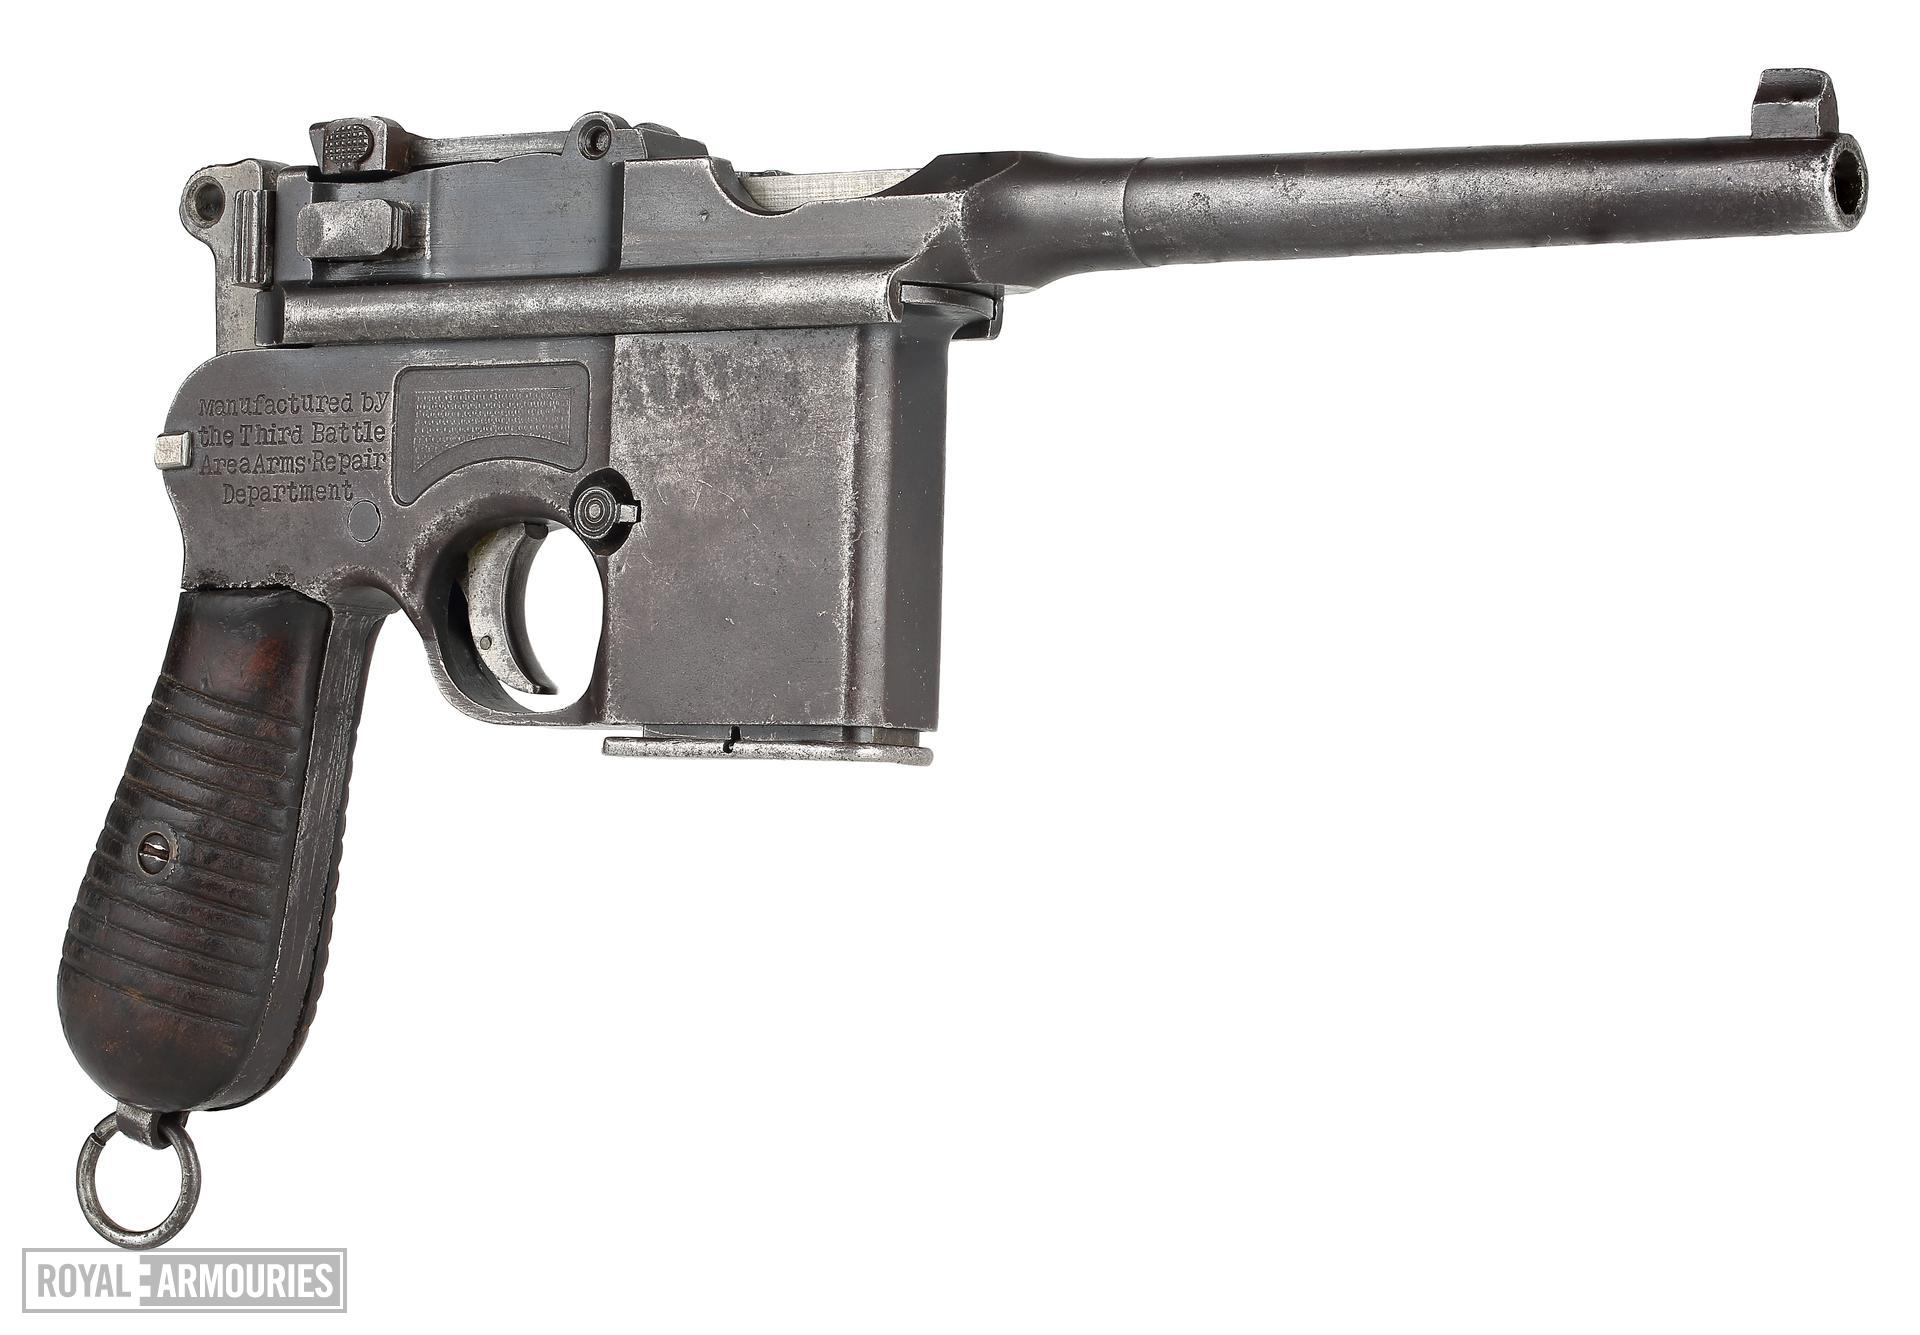 Centrefire automatic pistol - Mauser C96 Model 712 Schnellfeuer Chinese copy